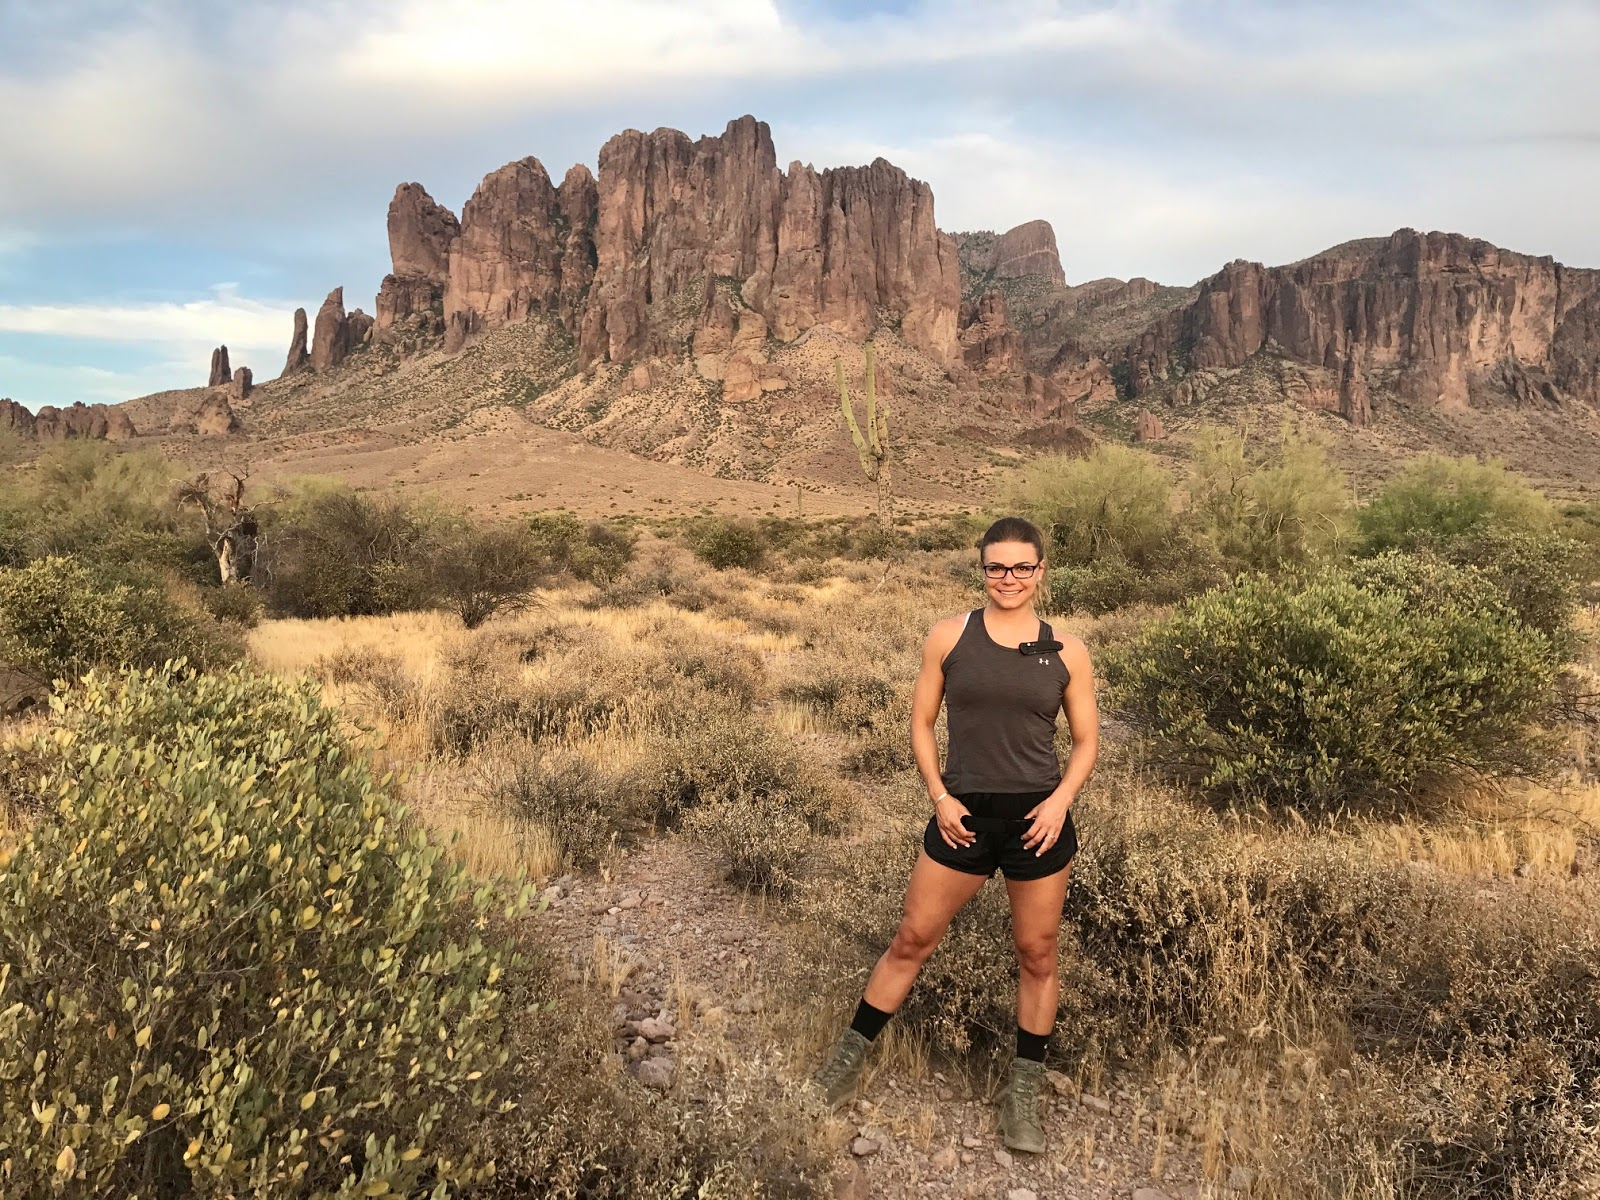 Siphon Draw Trail, Lost Dutchman State Park, Superstition Mountains, Apache Trail